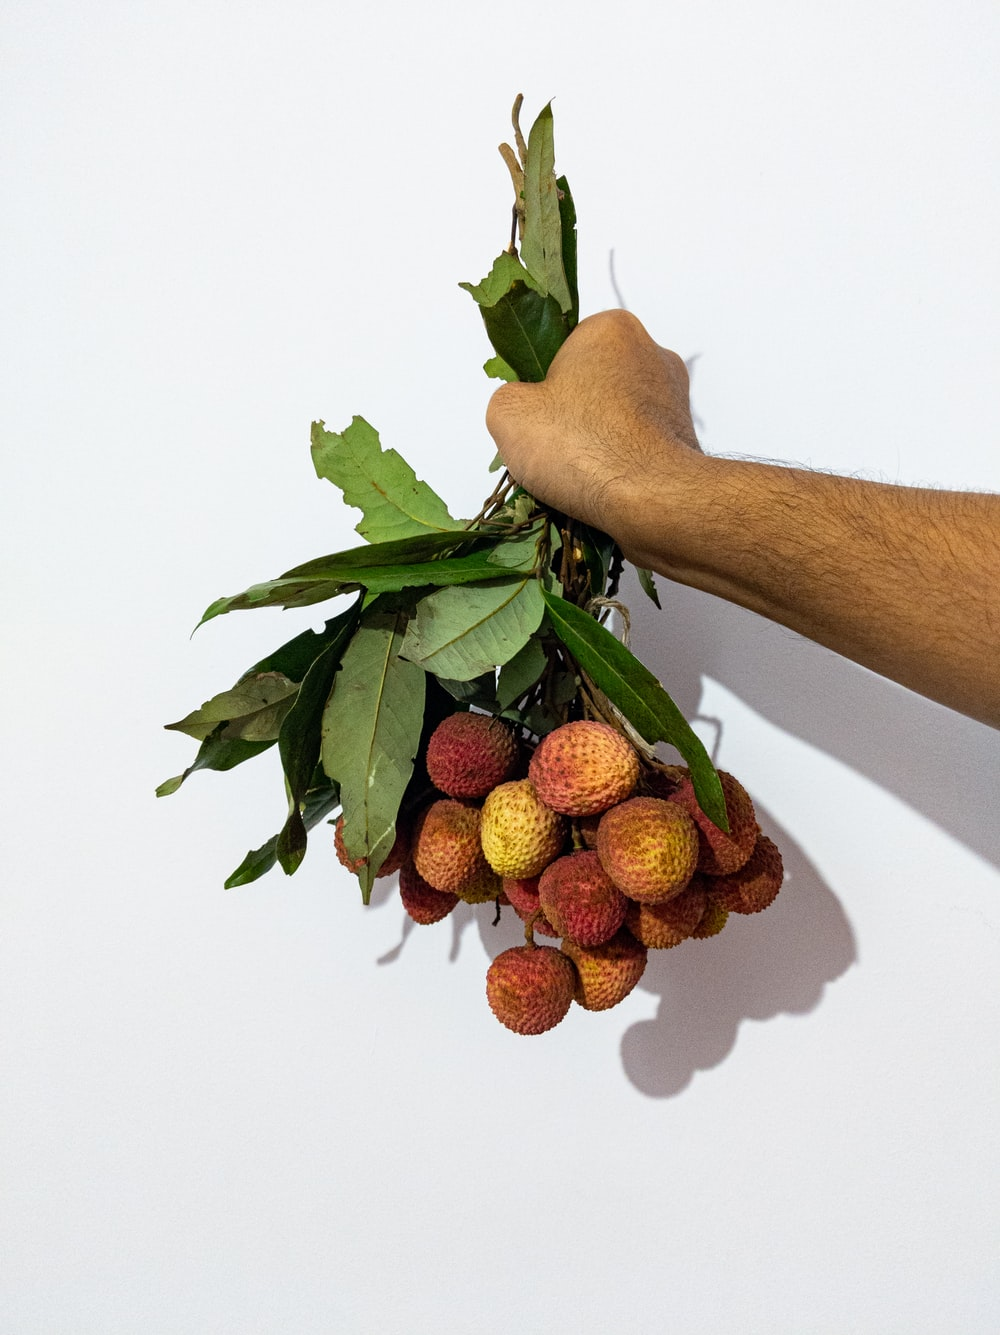 brown wooden stick with red strawberries